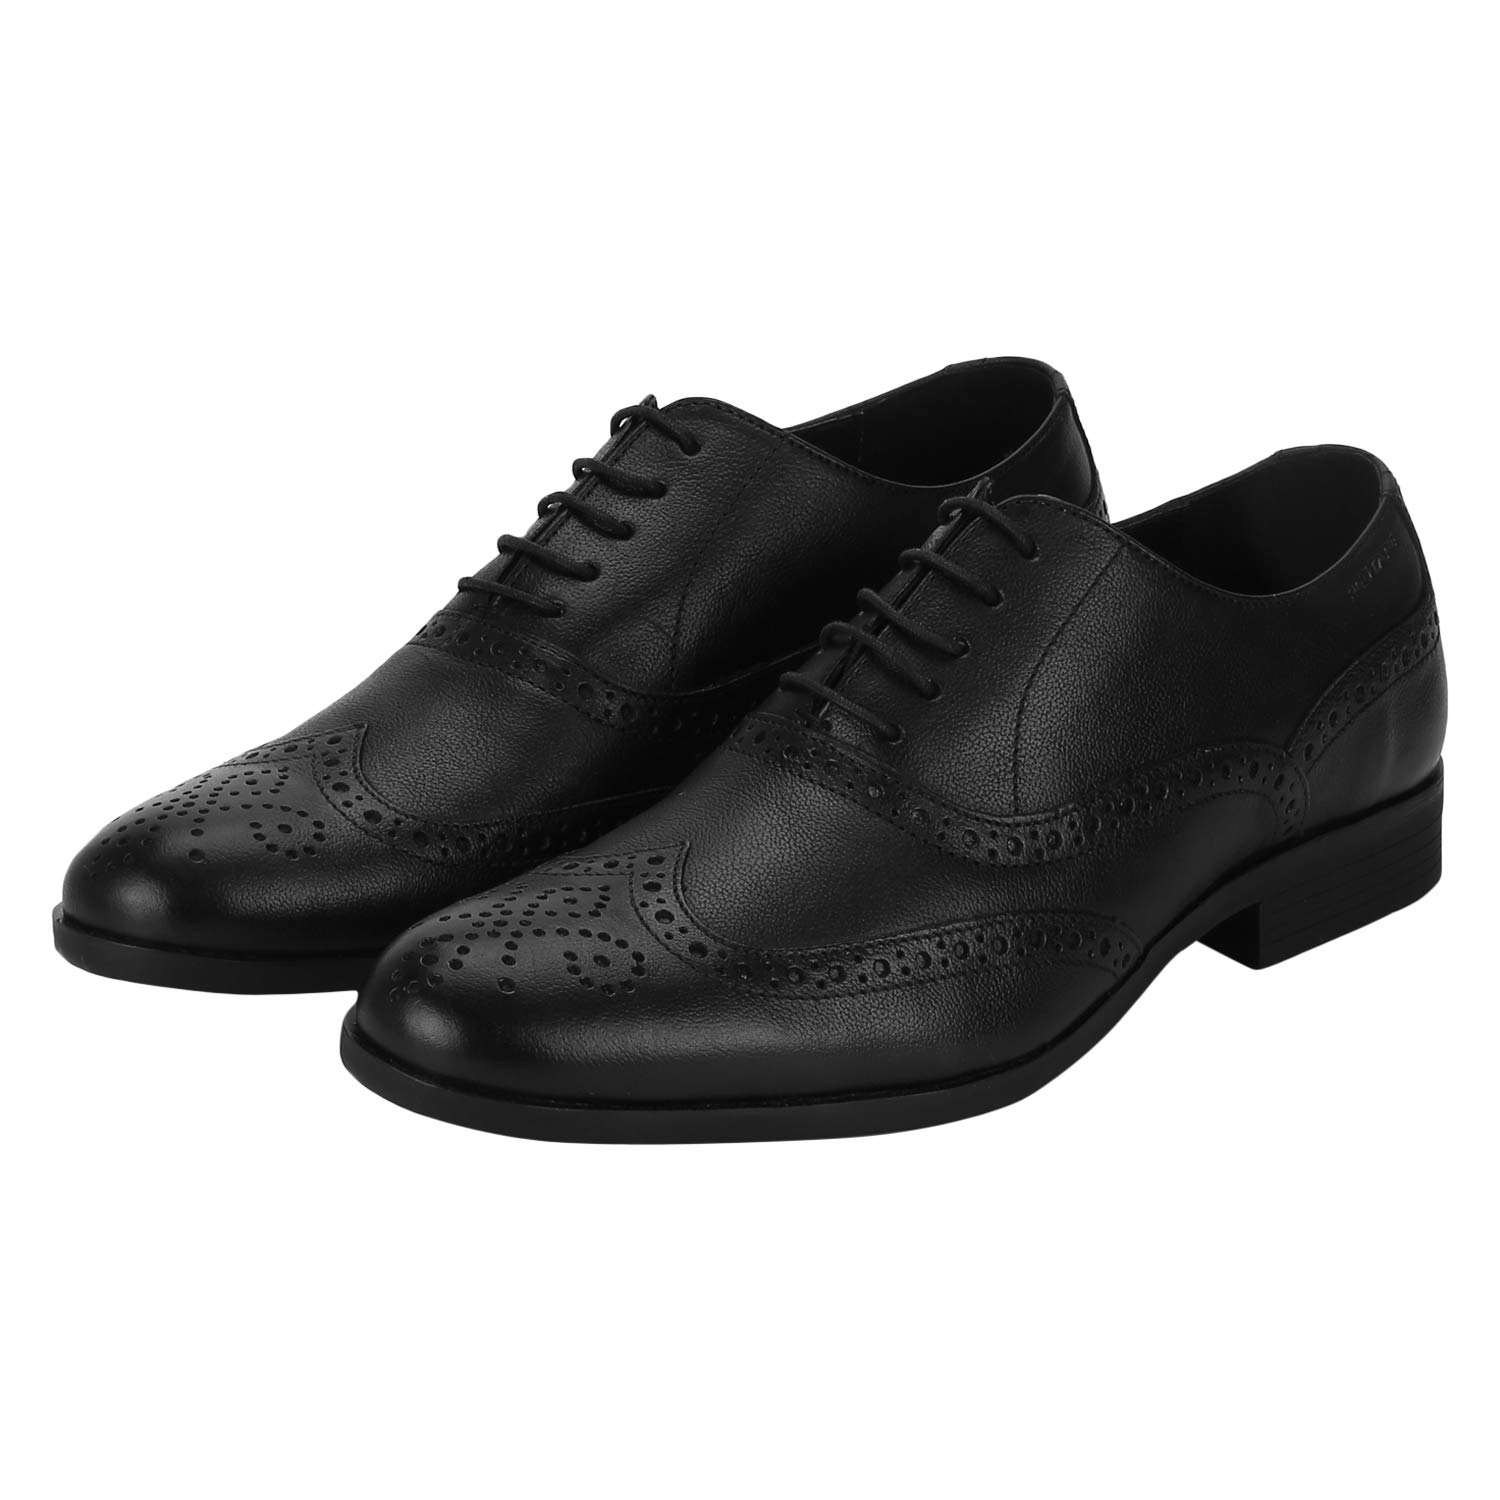 Buy Red Tape Men's Leather Formal Shoes